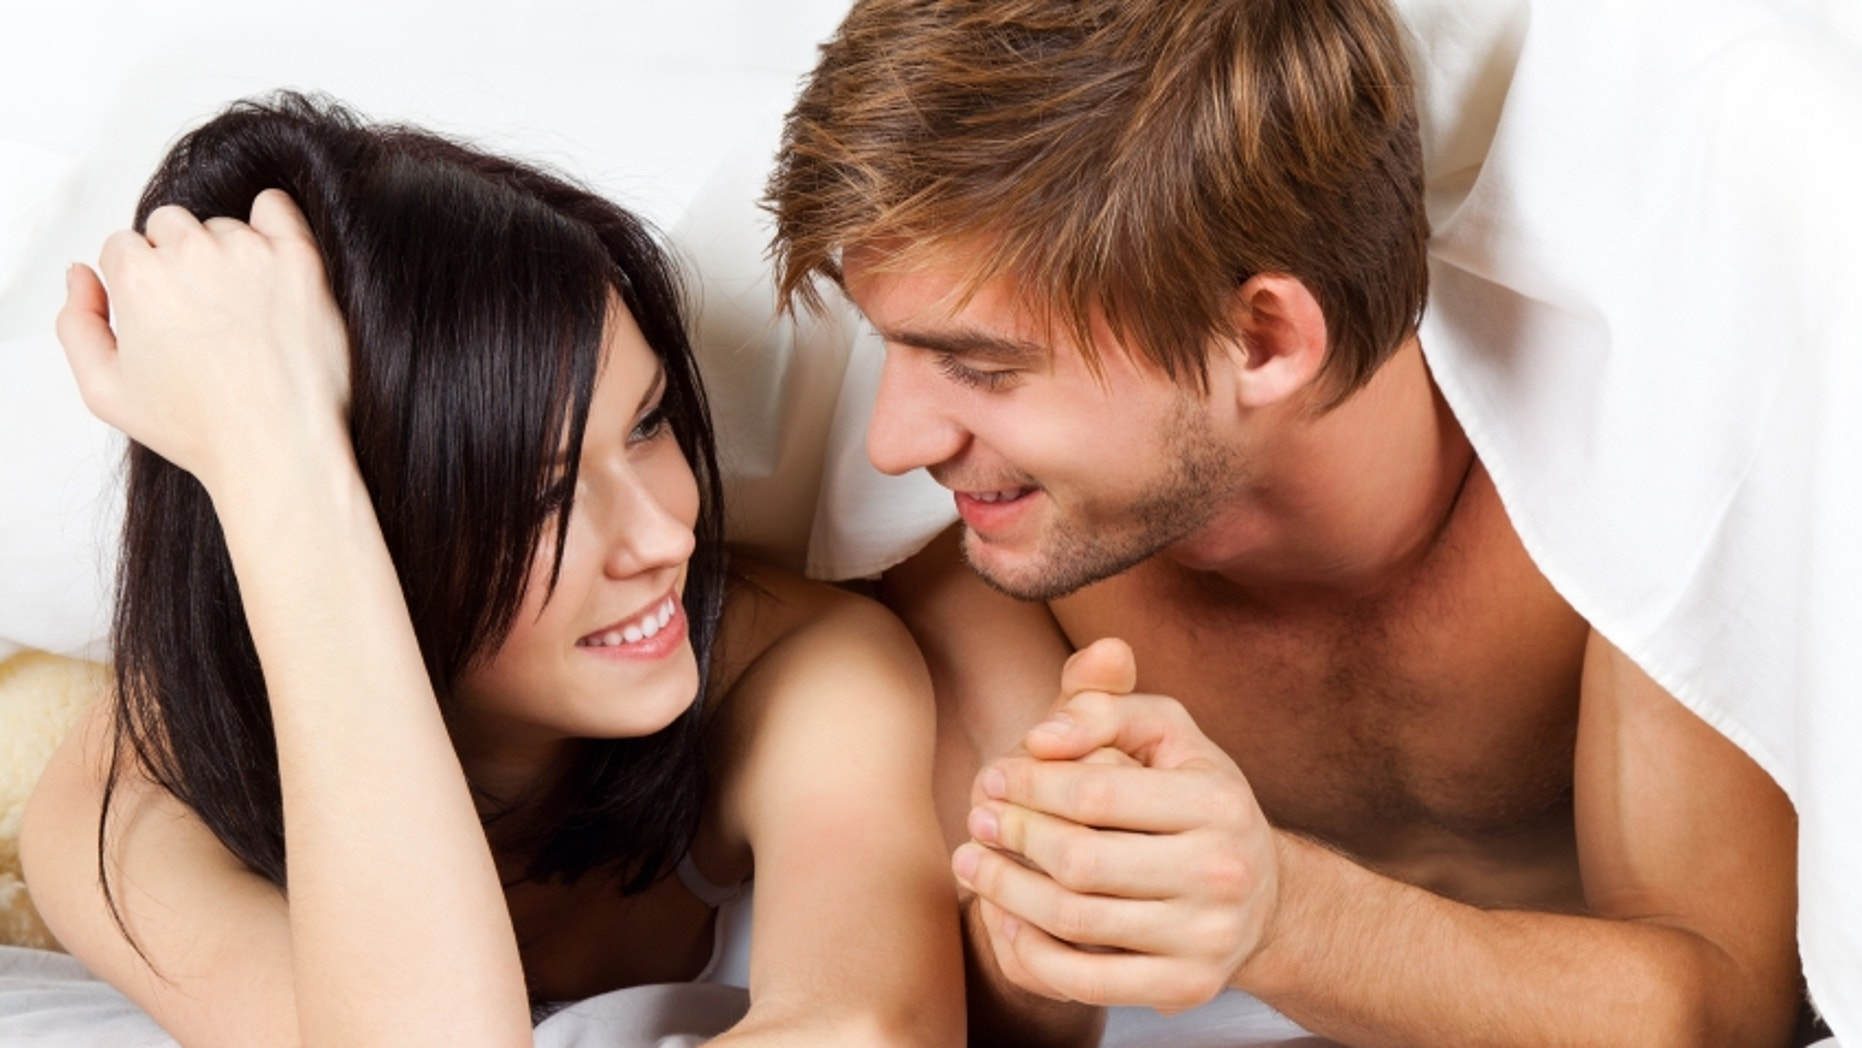 How sex affects the brain